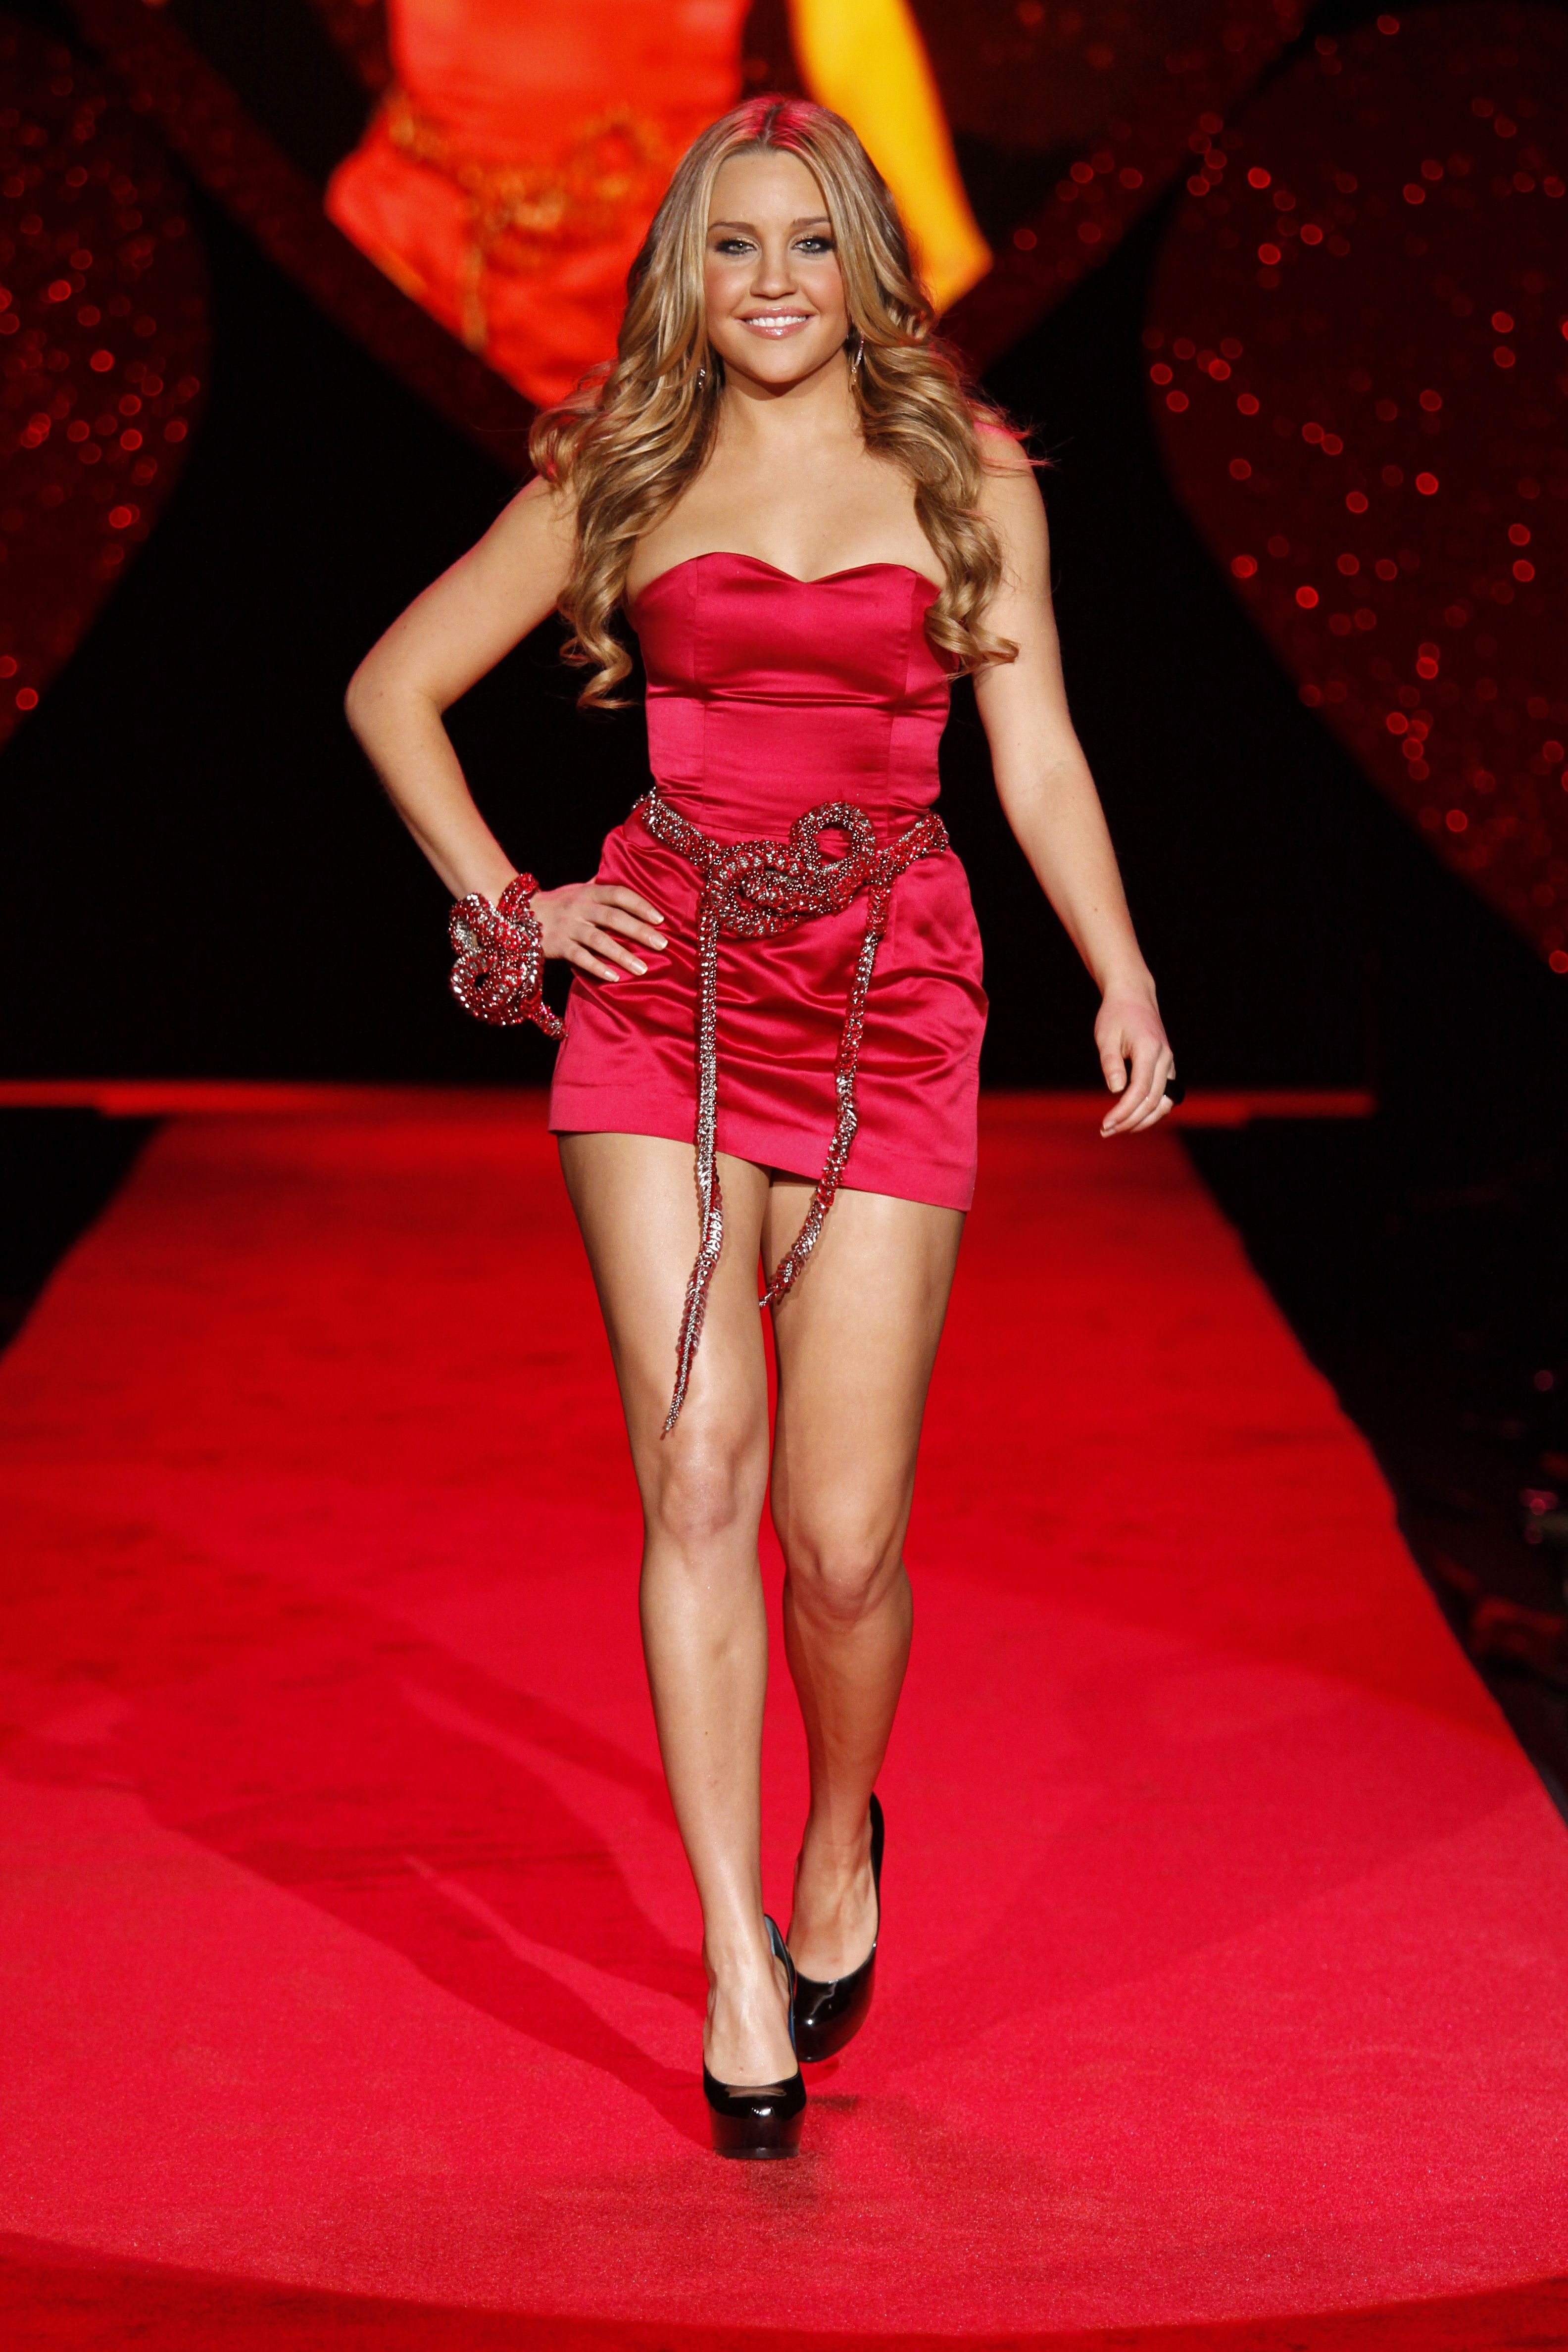 A photo showing Amanda Bynes walking down a red carpet dressed in a red low-cut dress and black heels.